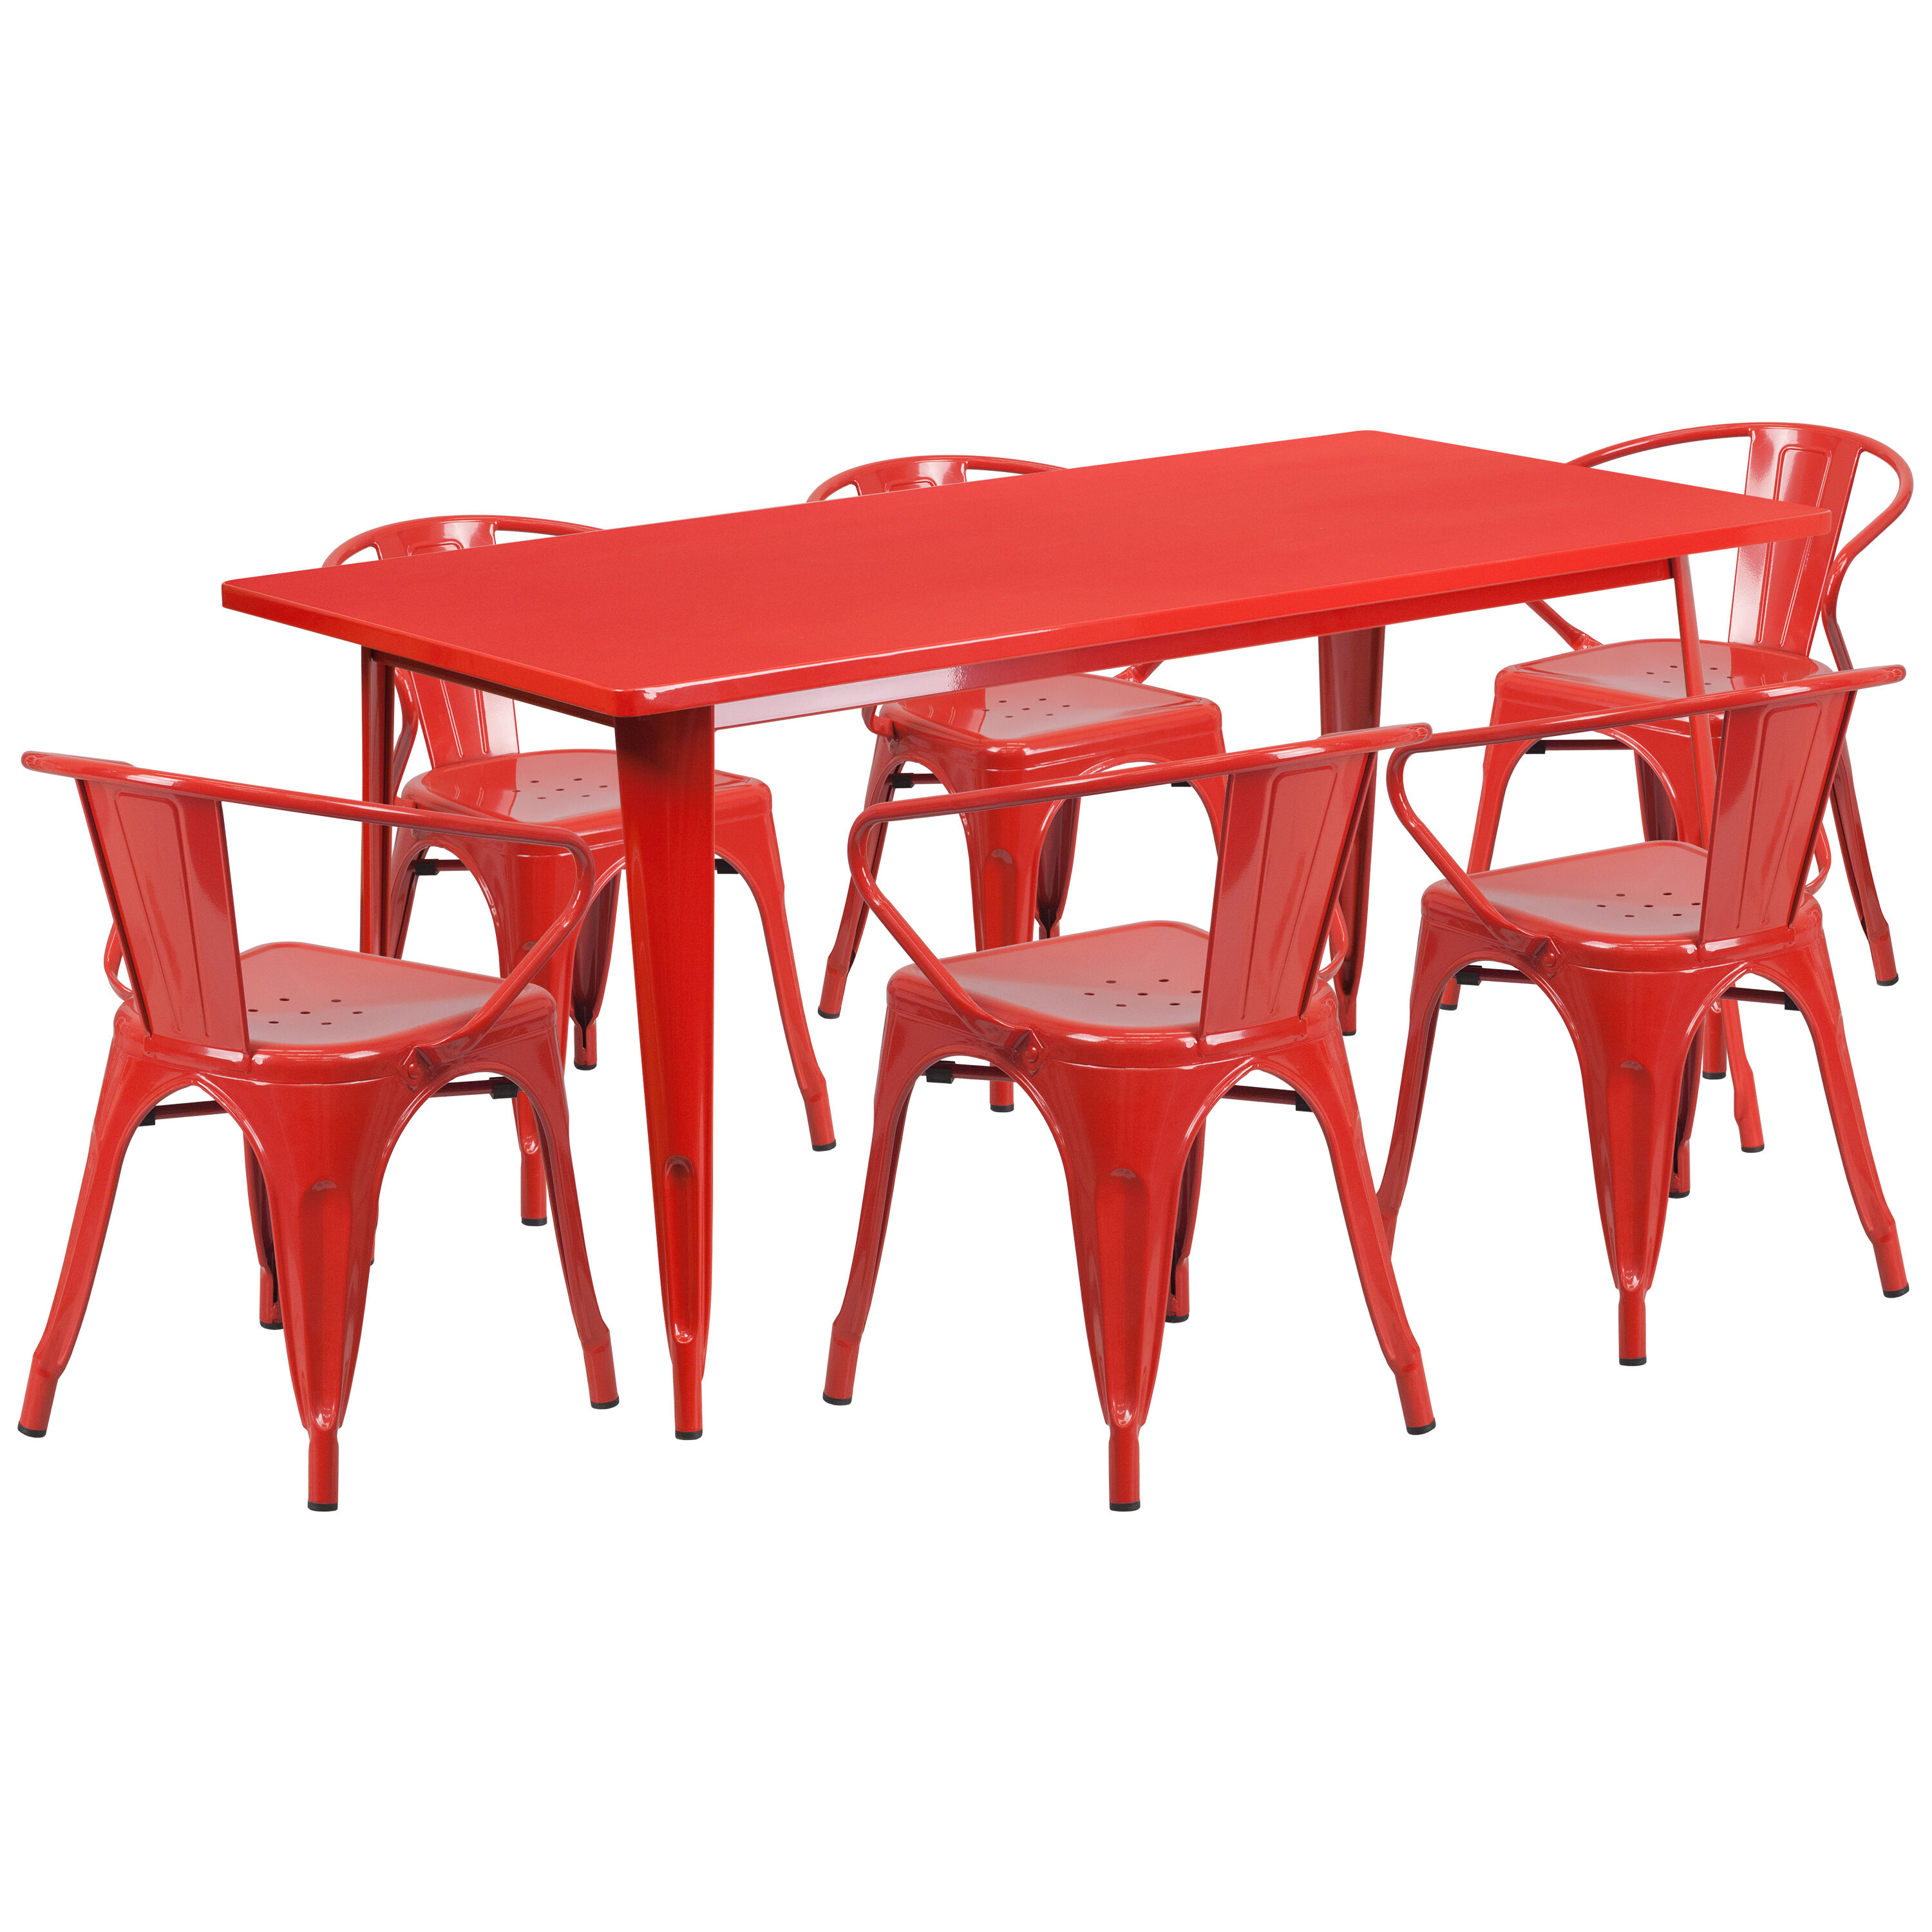 rectangular rubber chair glides gothic revival chairs 31 5x63 red metal table set et ct005 6 70 gg images